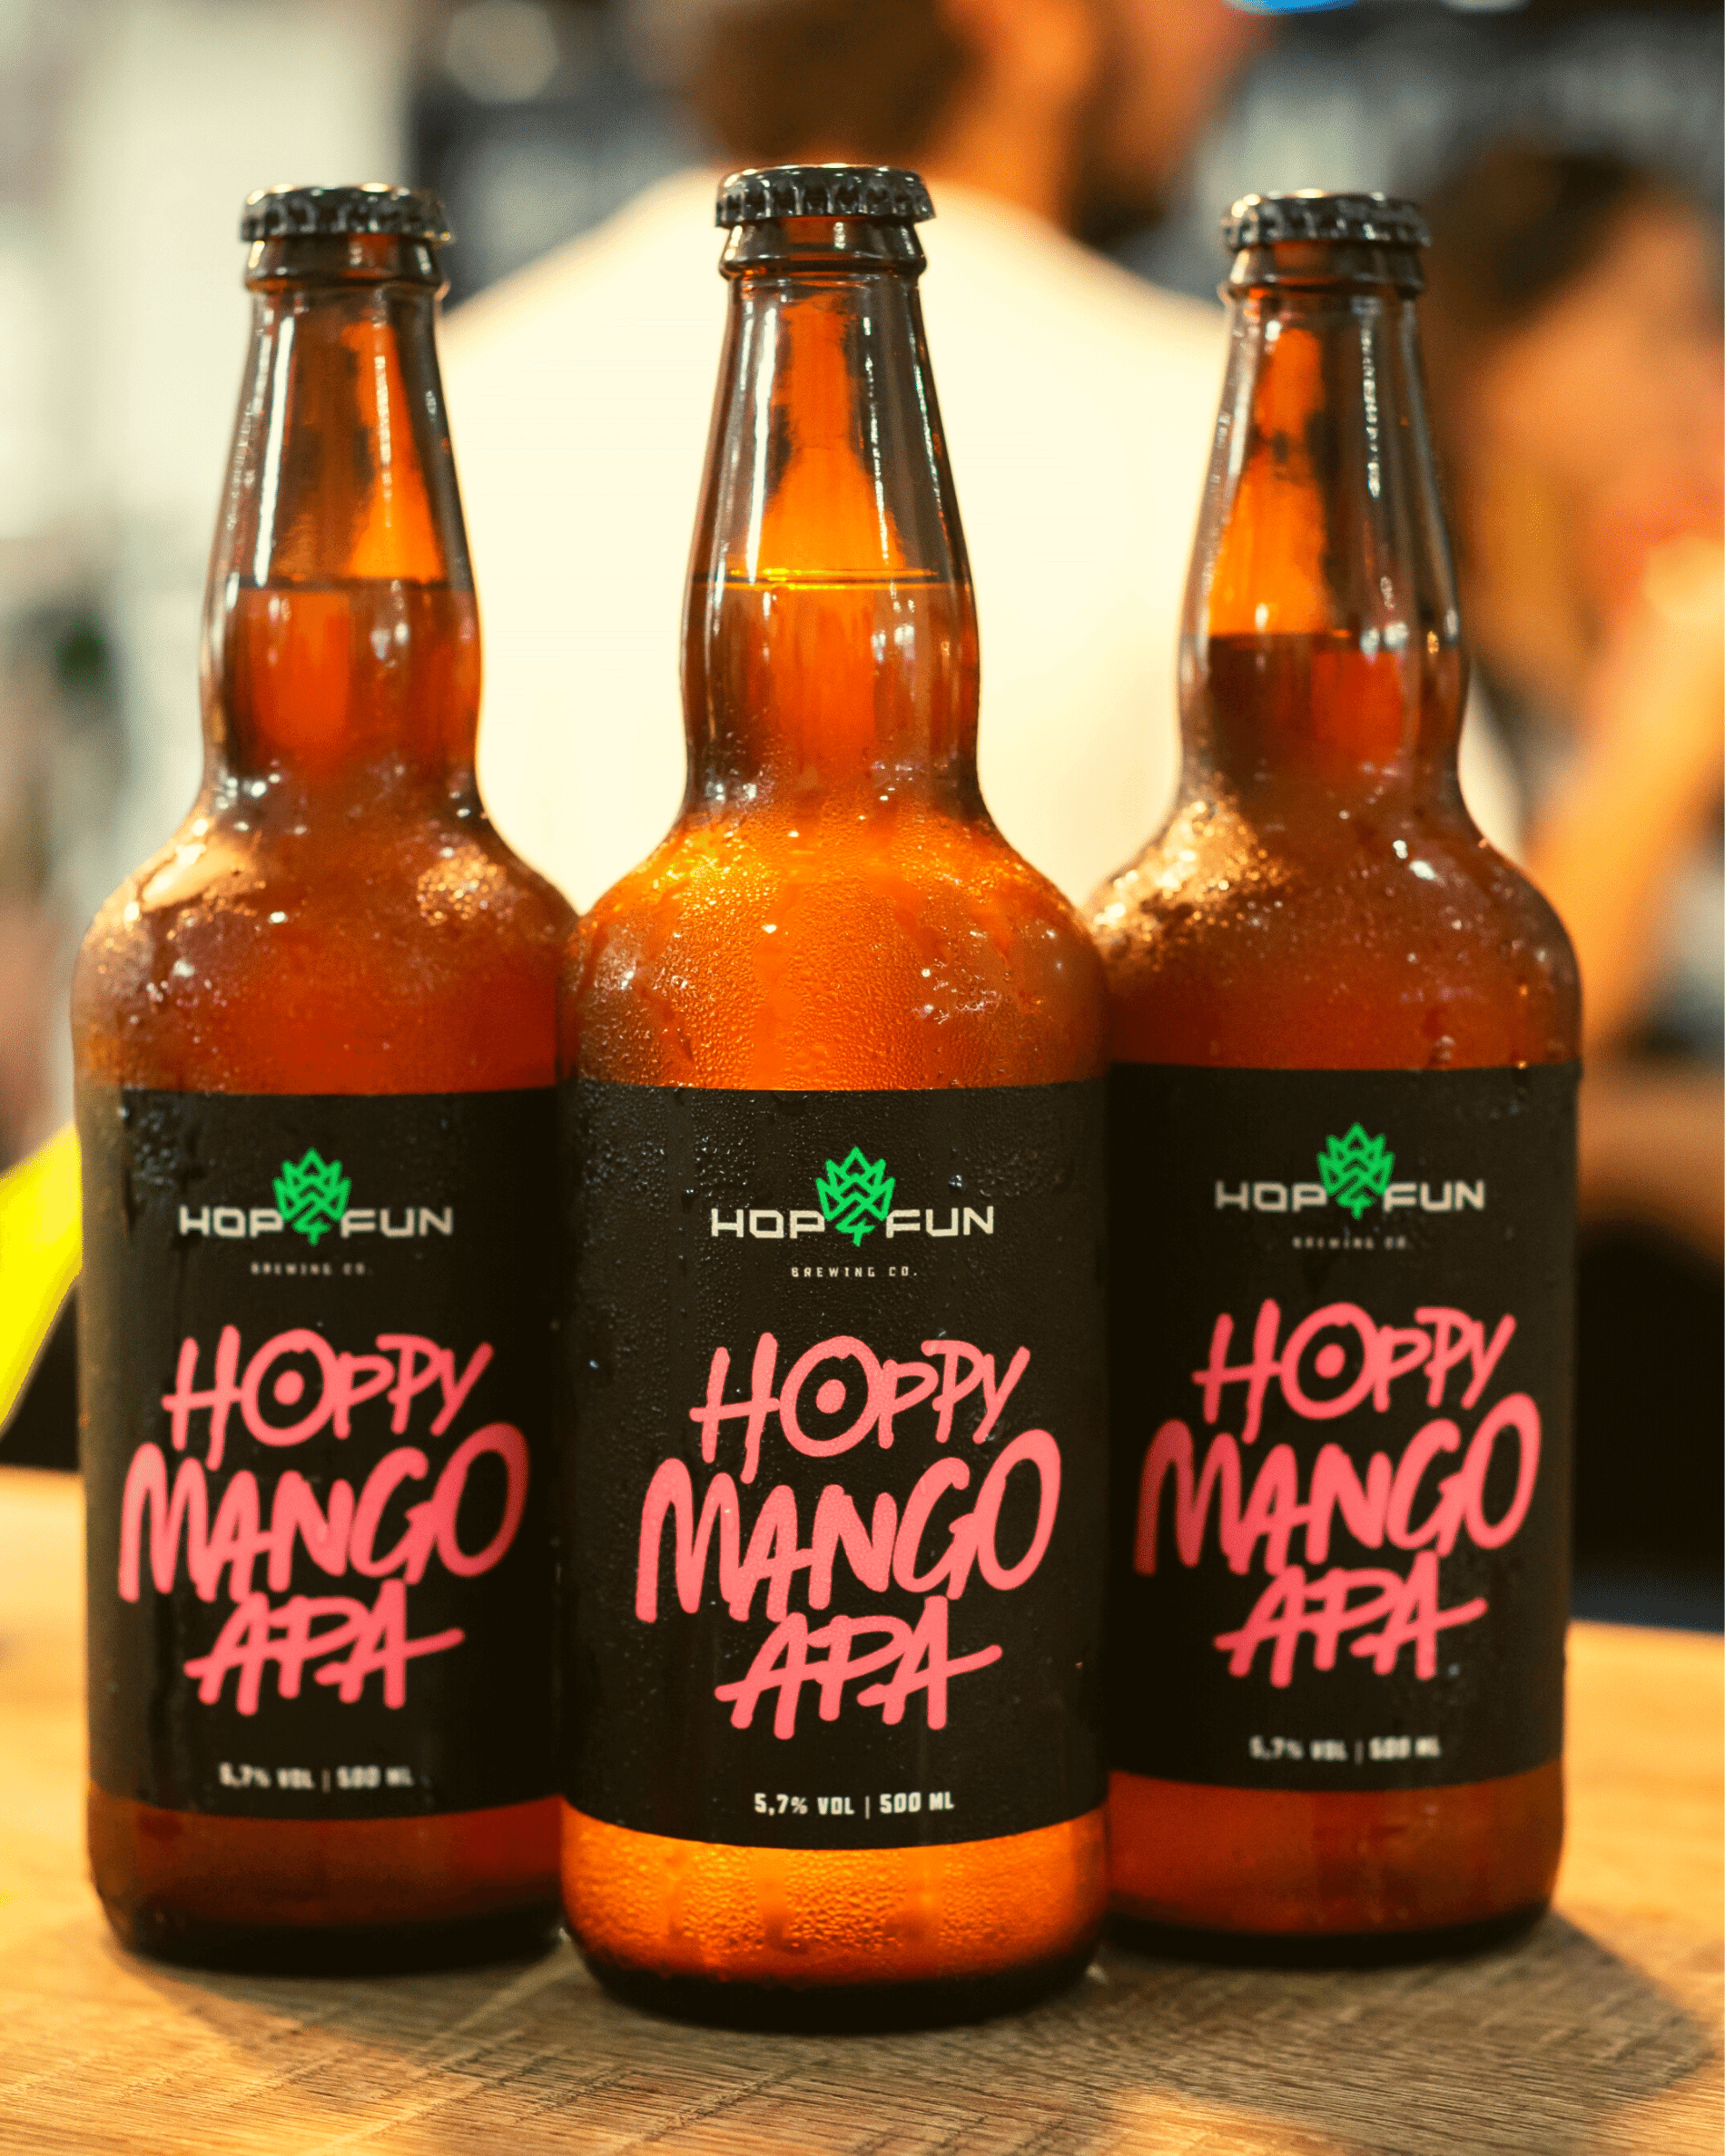 Hop For Fun cervejas especiais Hoppy Mango Apa